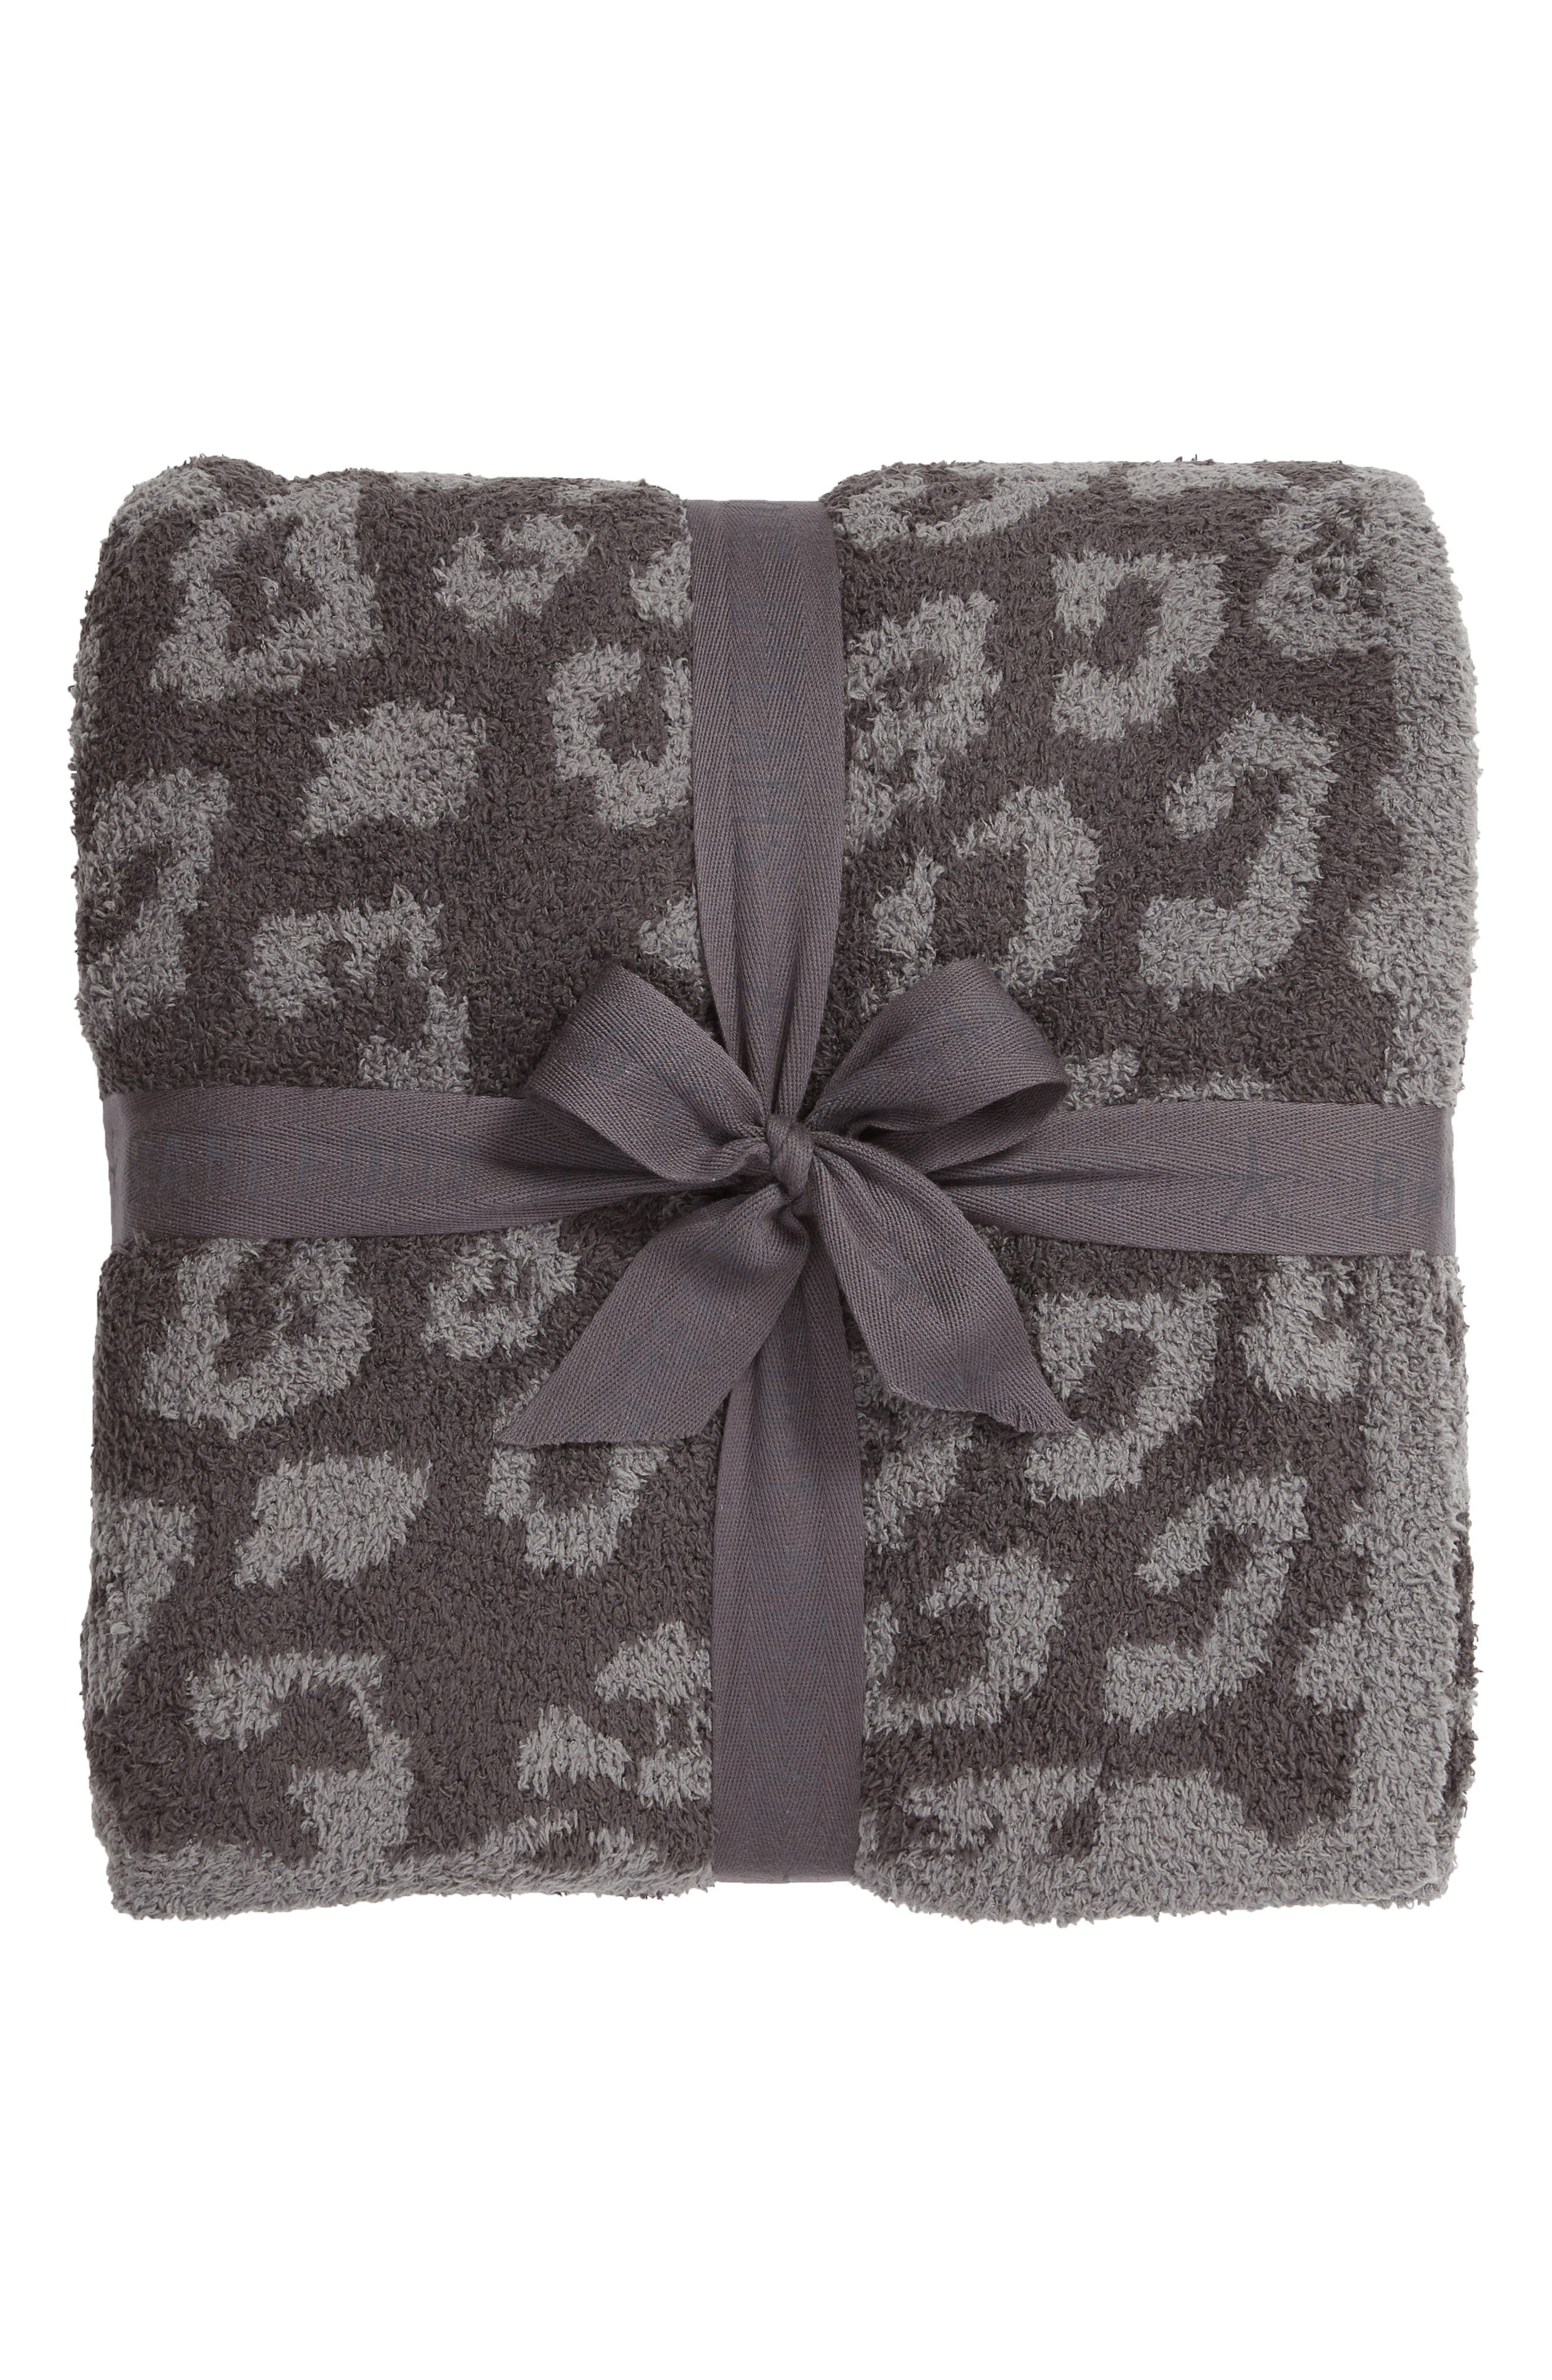 ,                             CozyChic 'In the Wild' Throw Blanket,                             Main thumbnail 1, color,                             GRAPHITE/ CARBON